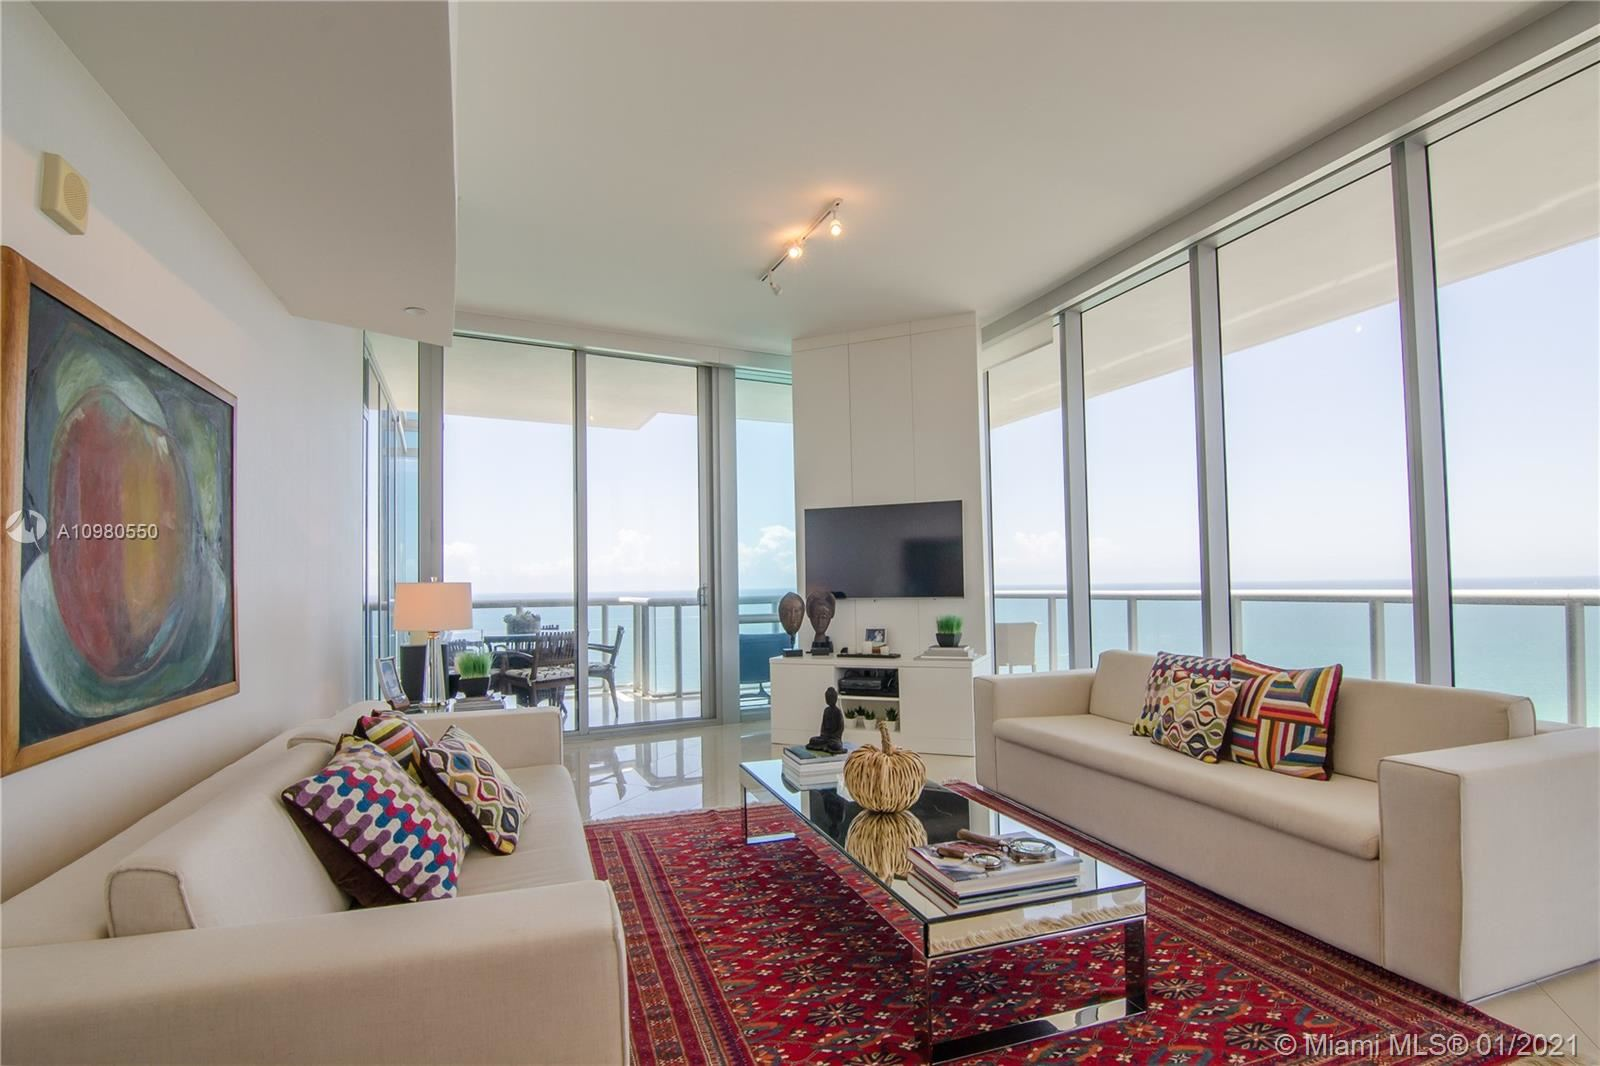 17121 Collins Ave #2601, Sunny Isles, FL 33160 - #: A10980550